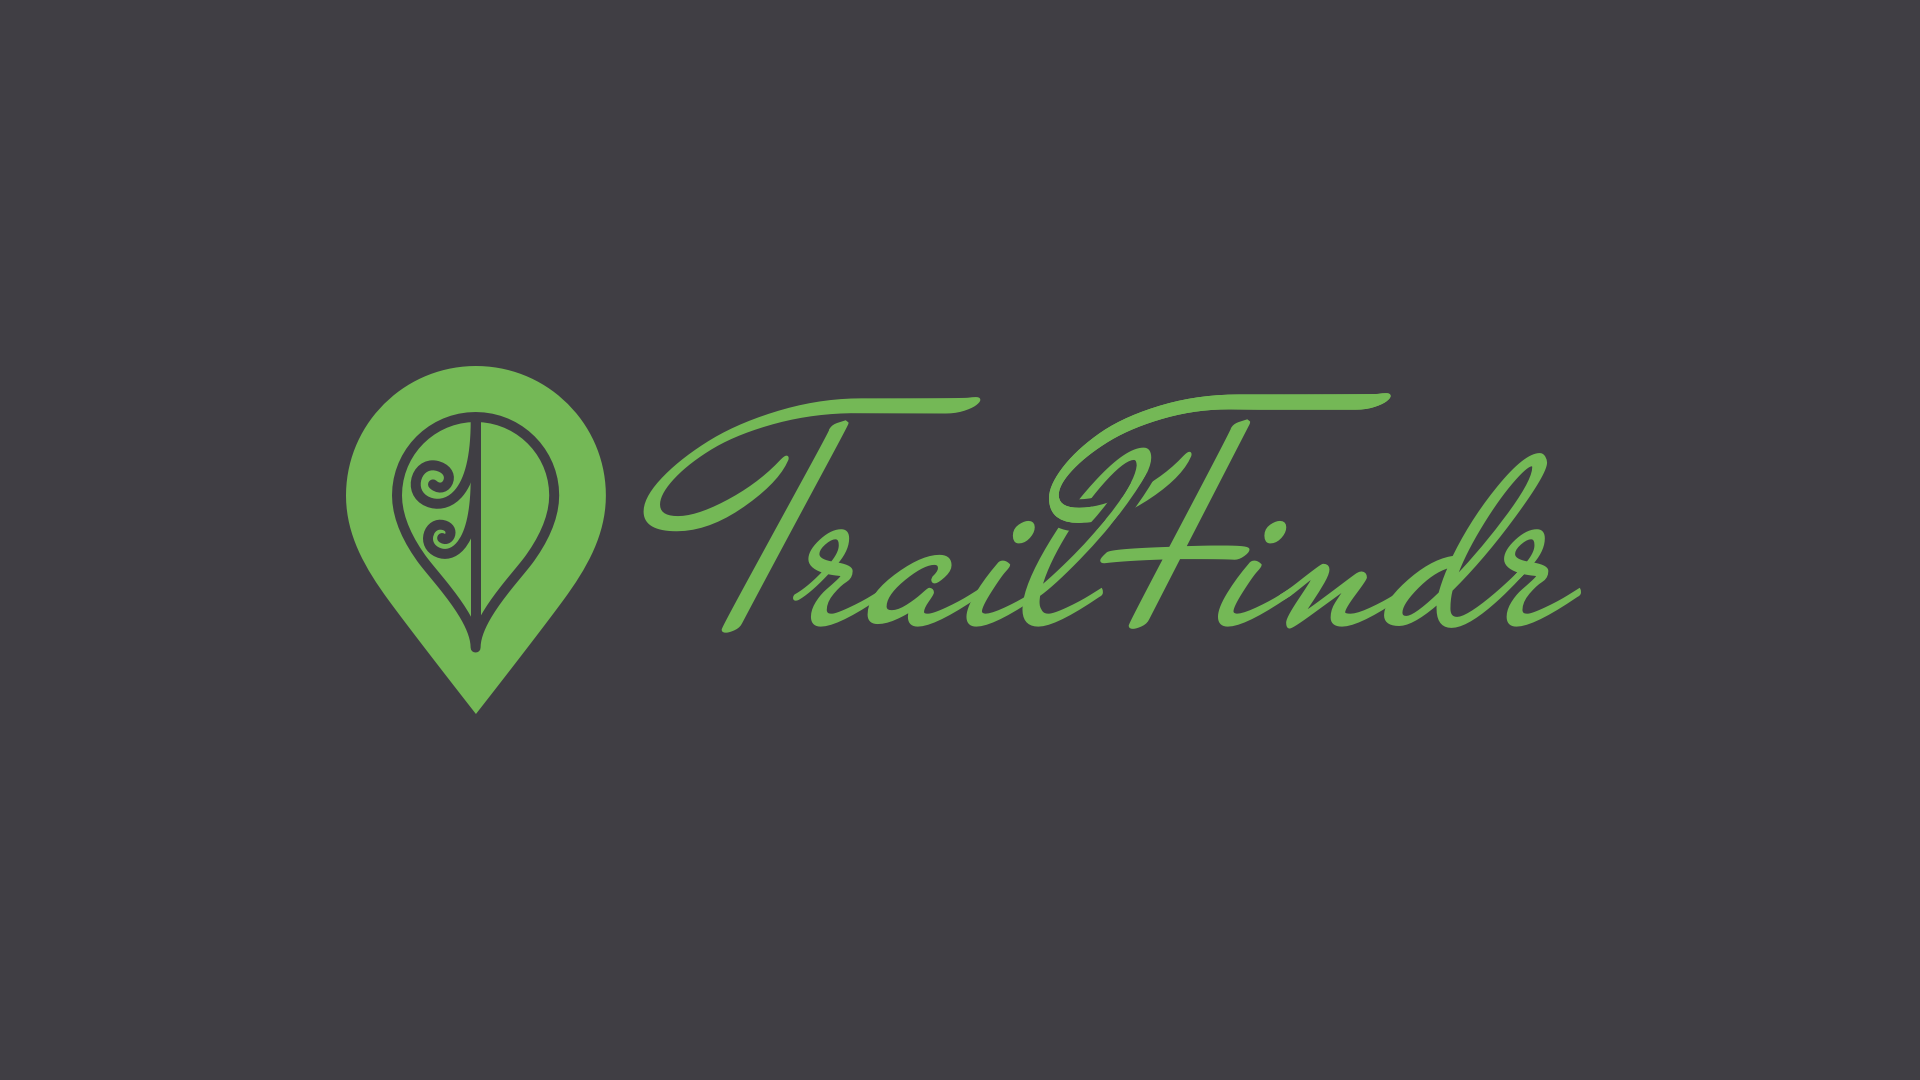 alternative trailfindr logo